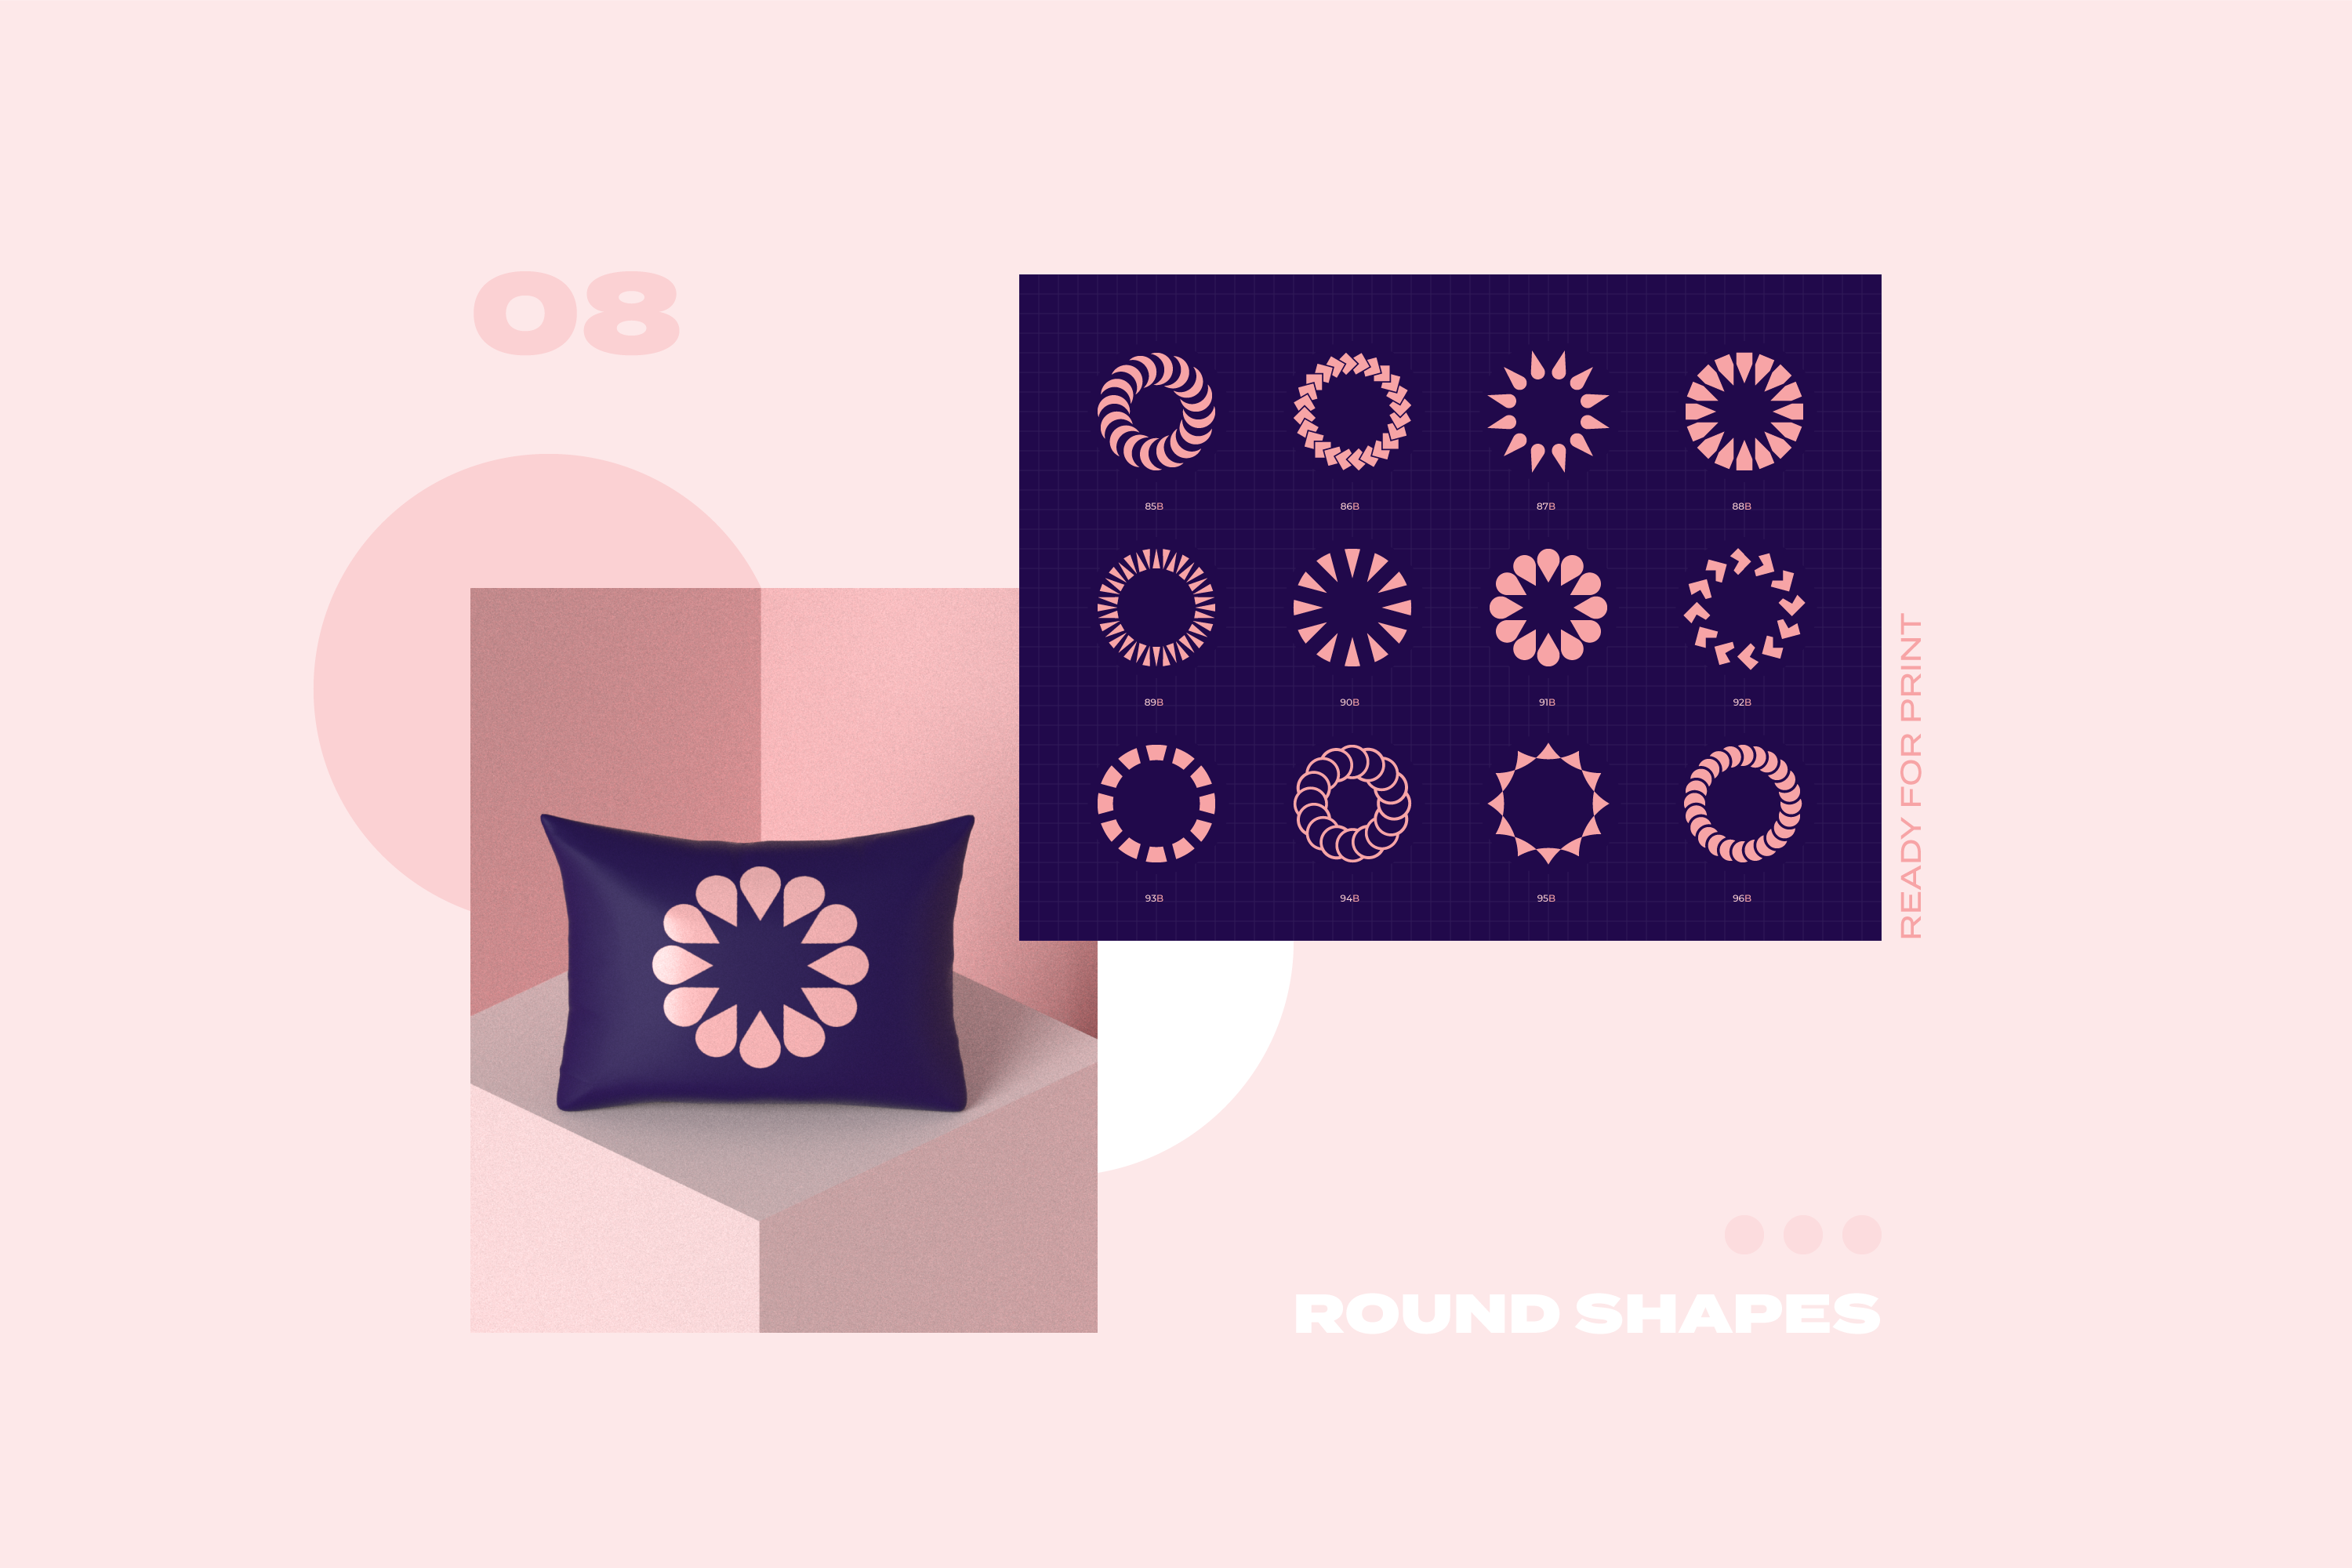 96 Geometric shapes & logo marks collection VOL.1 example image 22